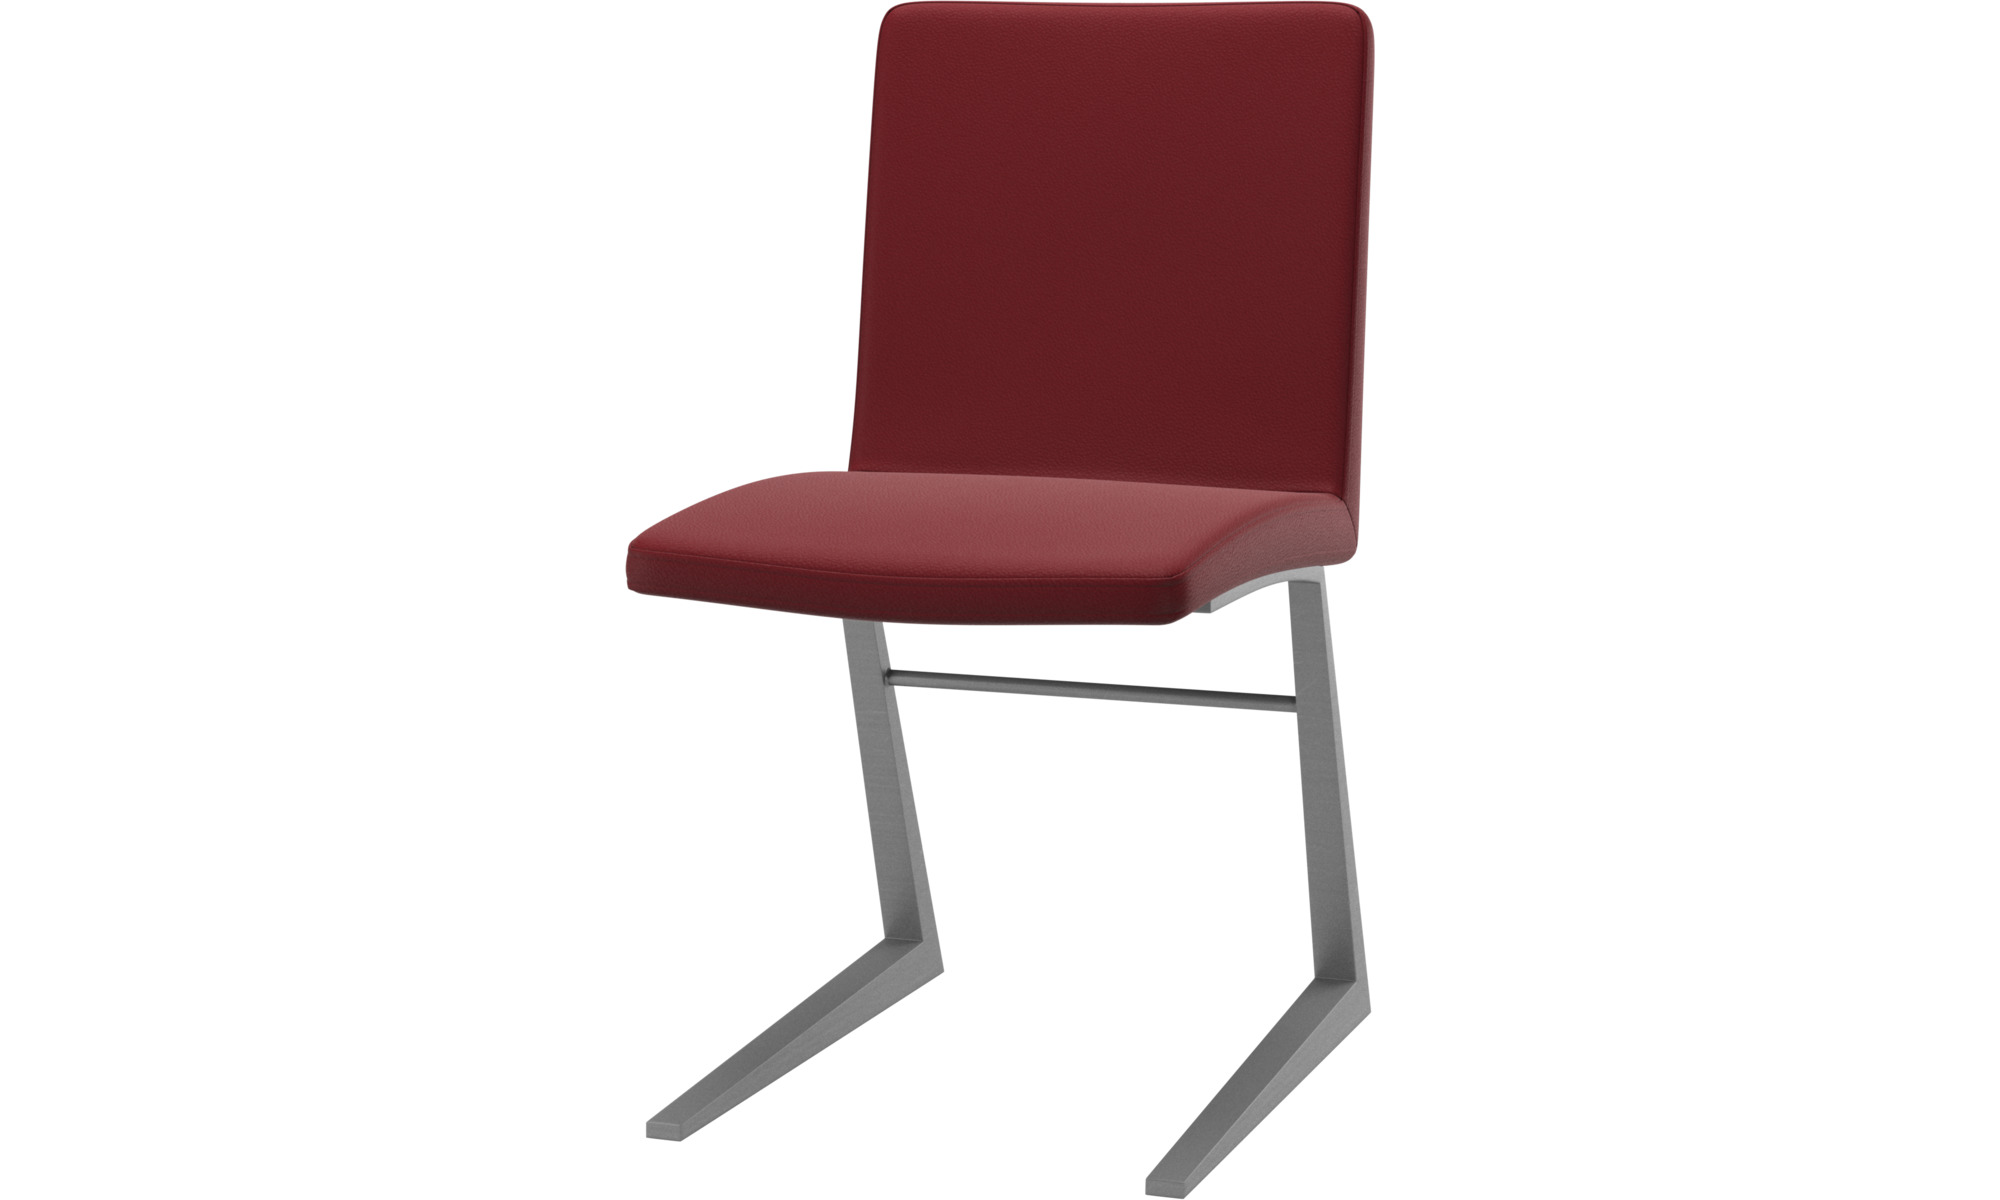 Dining chairs - Mariposa Deluxe chair - Red - Leather